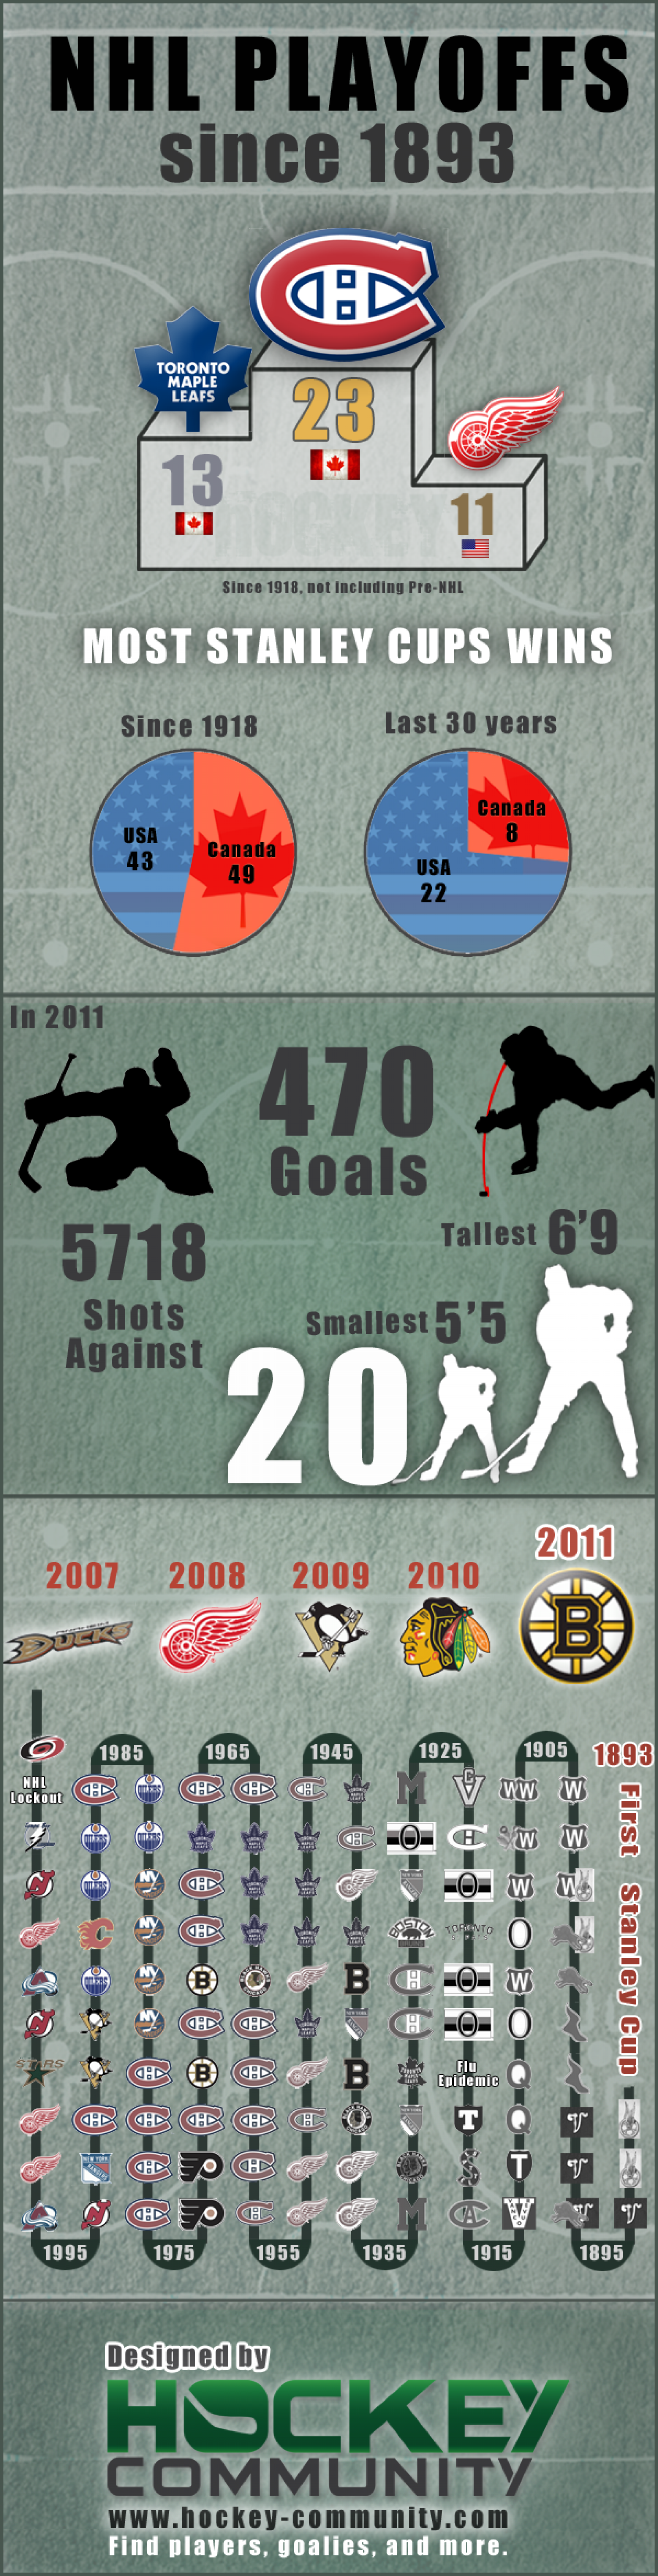 NHL PLAYOFFS since 1893 Infographic